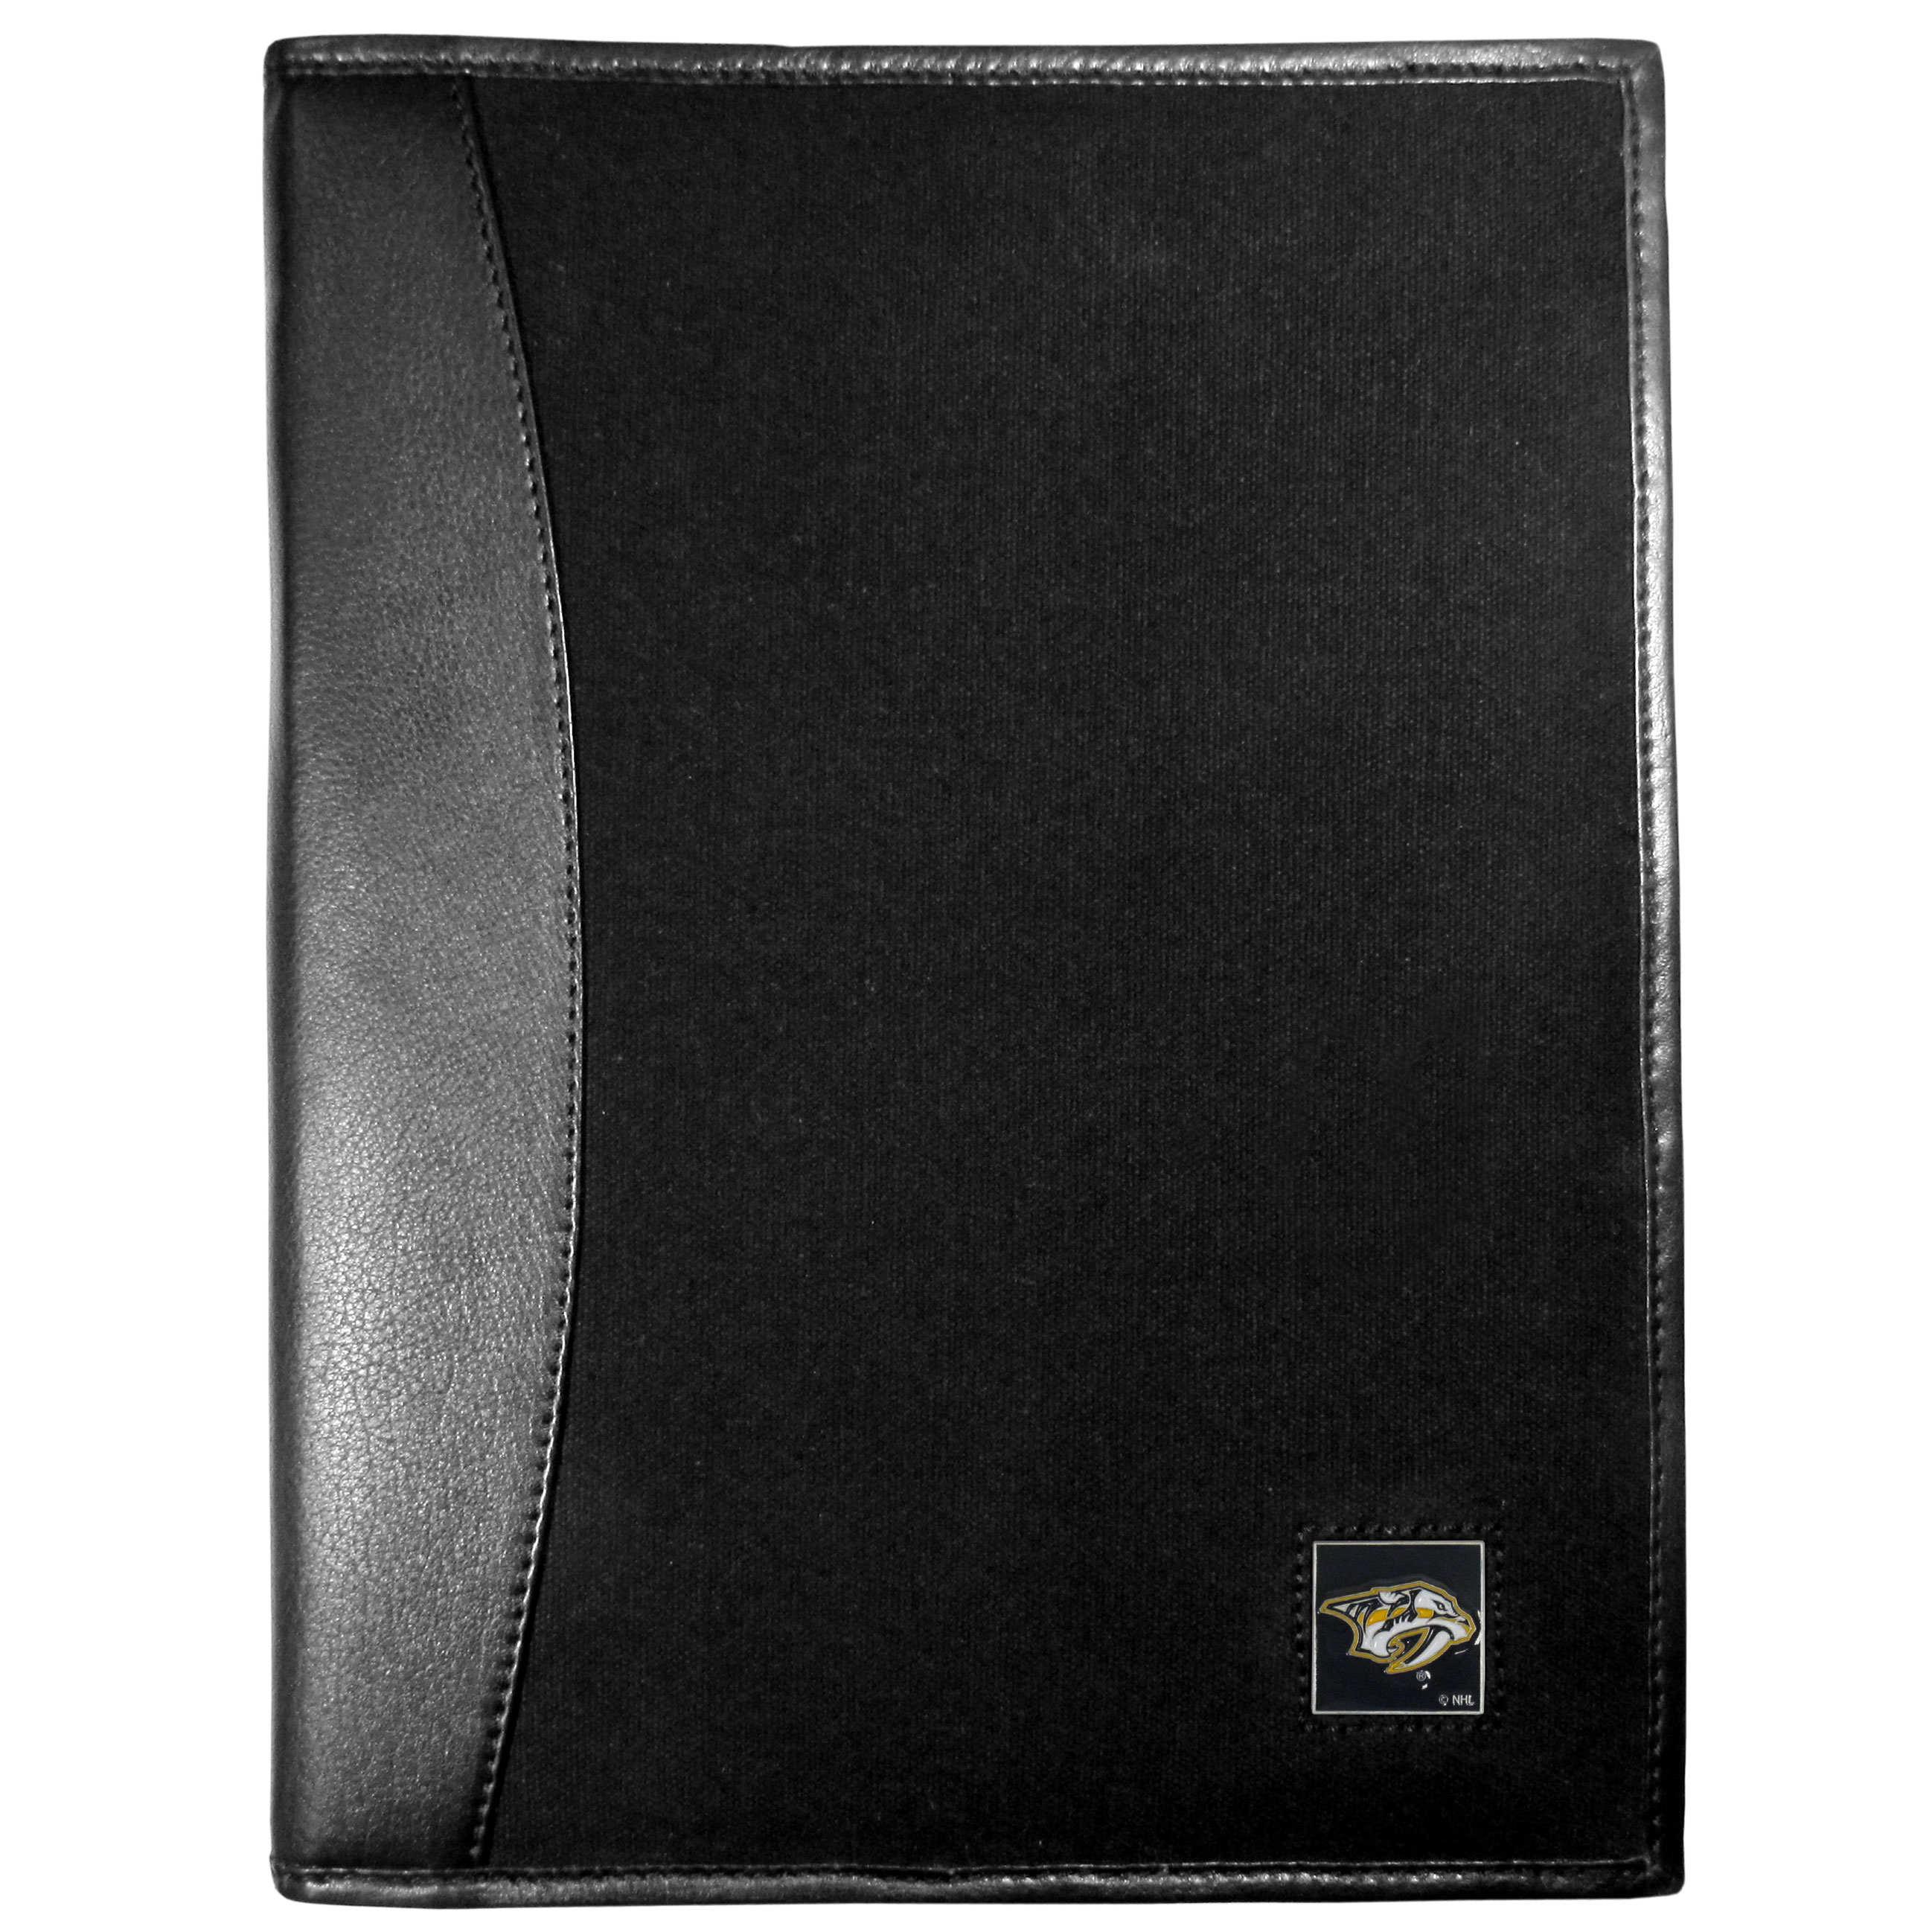 Nashville Predators® Leather and Canvas Padfolio - Our leather and canvas padfolio perfectly blends form and function. The attractive portfolio is bound in fine grain leather with an attractive canvas finish and the interior is a soft nylon. This high quality business accessory also features a fully cast metal Nashville Predators® emblem that is subtly set in the corner of the organizer. It is packed with features like 6 card slots for badges, business cards, hotel keys or credit cards and ID with a large pocket for loose papers and a writing tablet slot making it a must-have for the professional on the go.